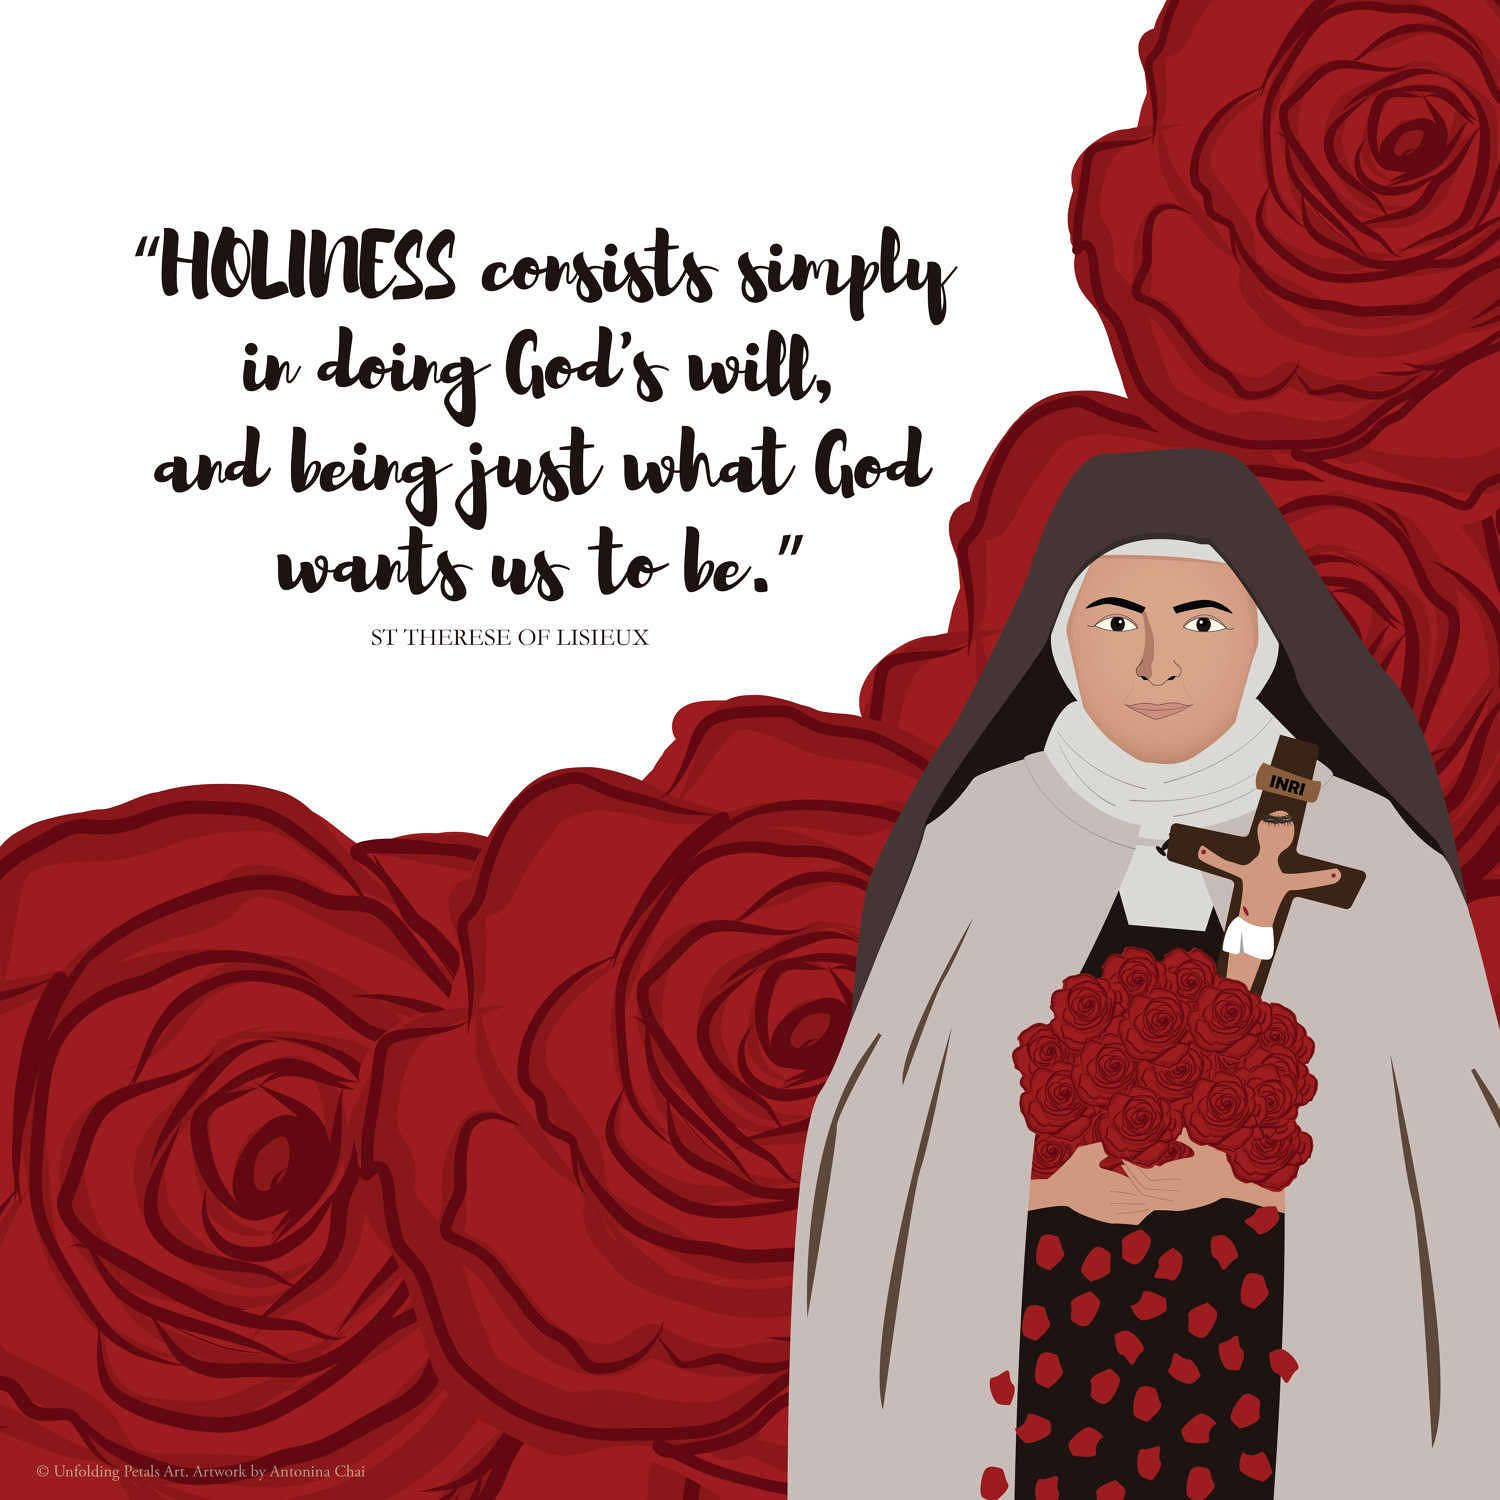 St Therese Of Lisieux On Holiness Catholic Printables Wall Art Prayer Card 33cmx33cm 8x10 A4 A6 Digit St Therese Of Lisieux St Therese Therese Of Lisieux